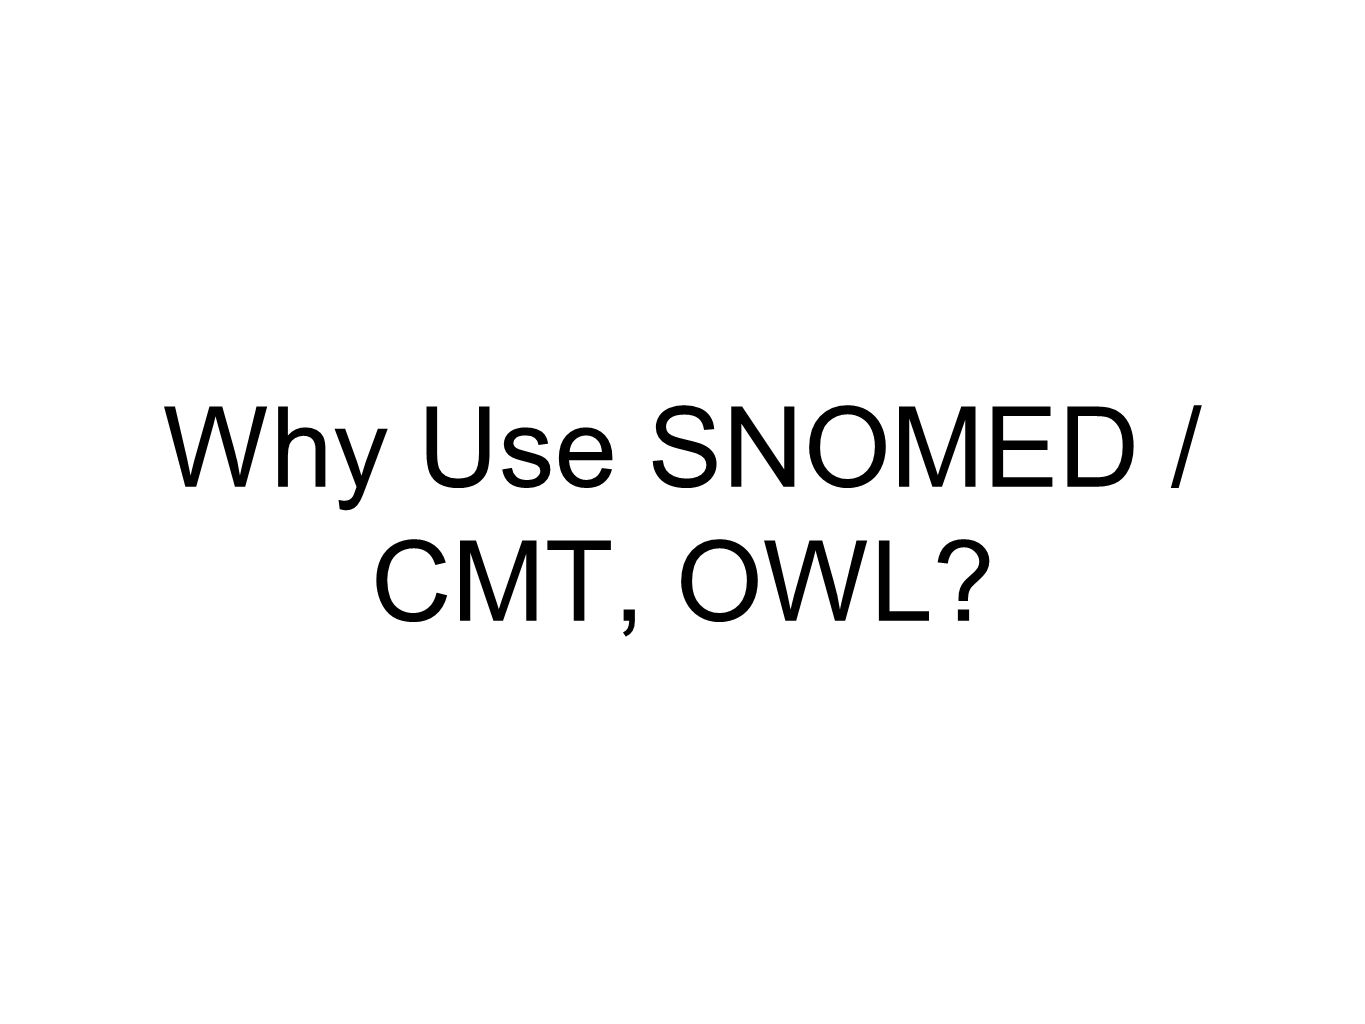 Why Use SNOMED / CMT, OWL